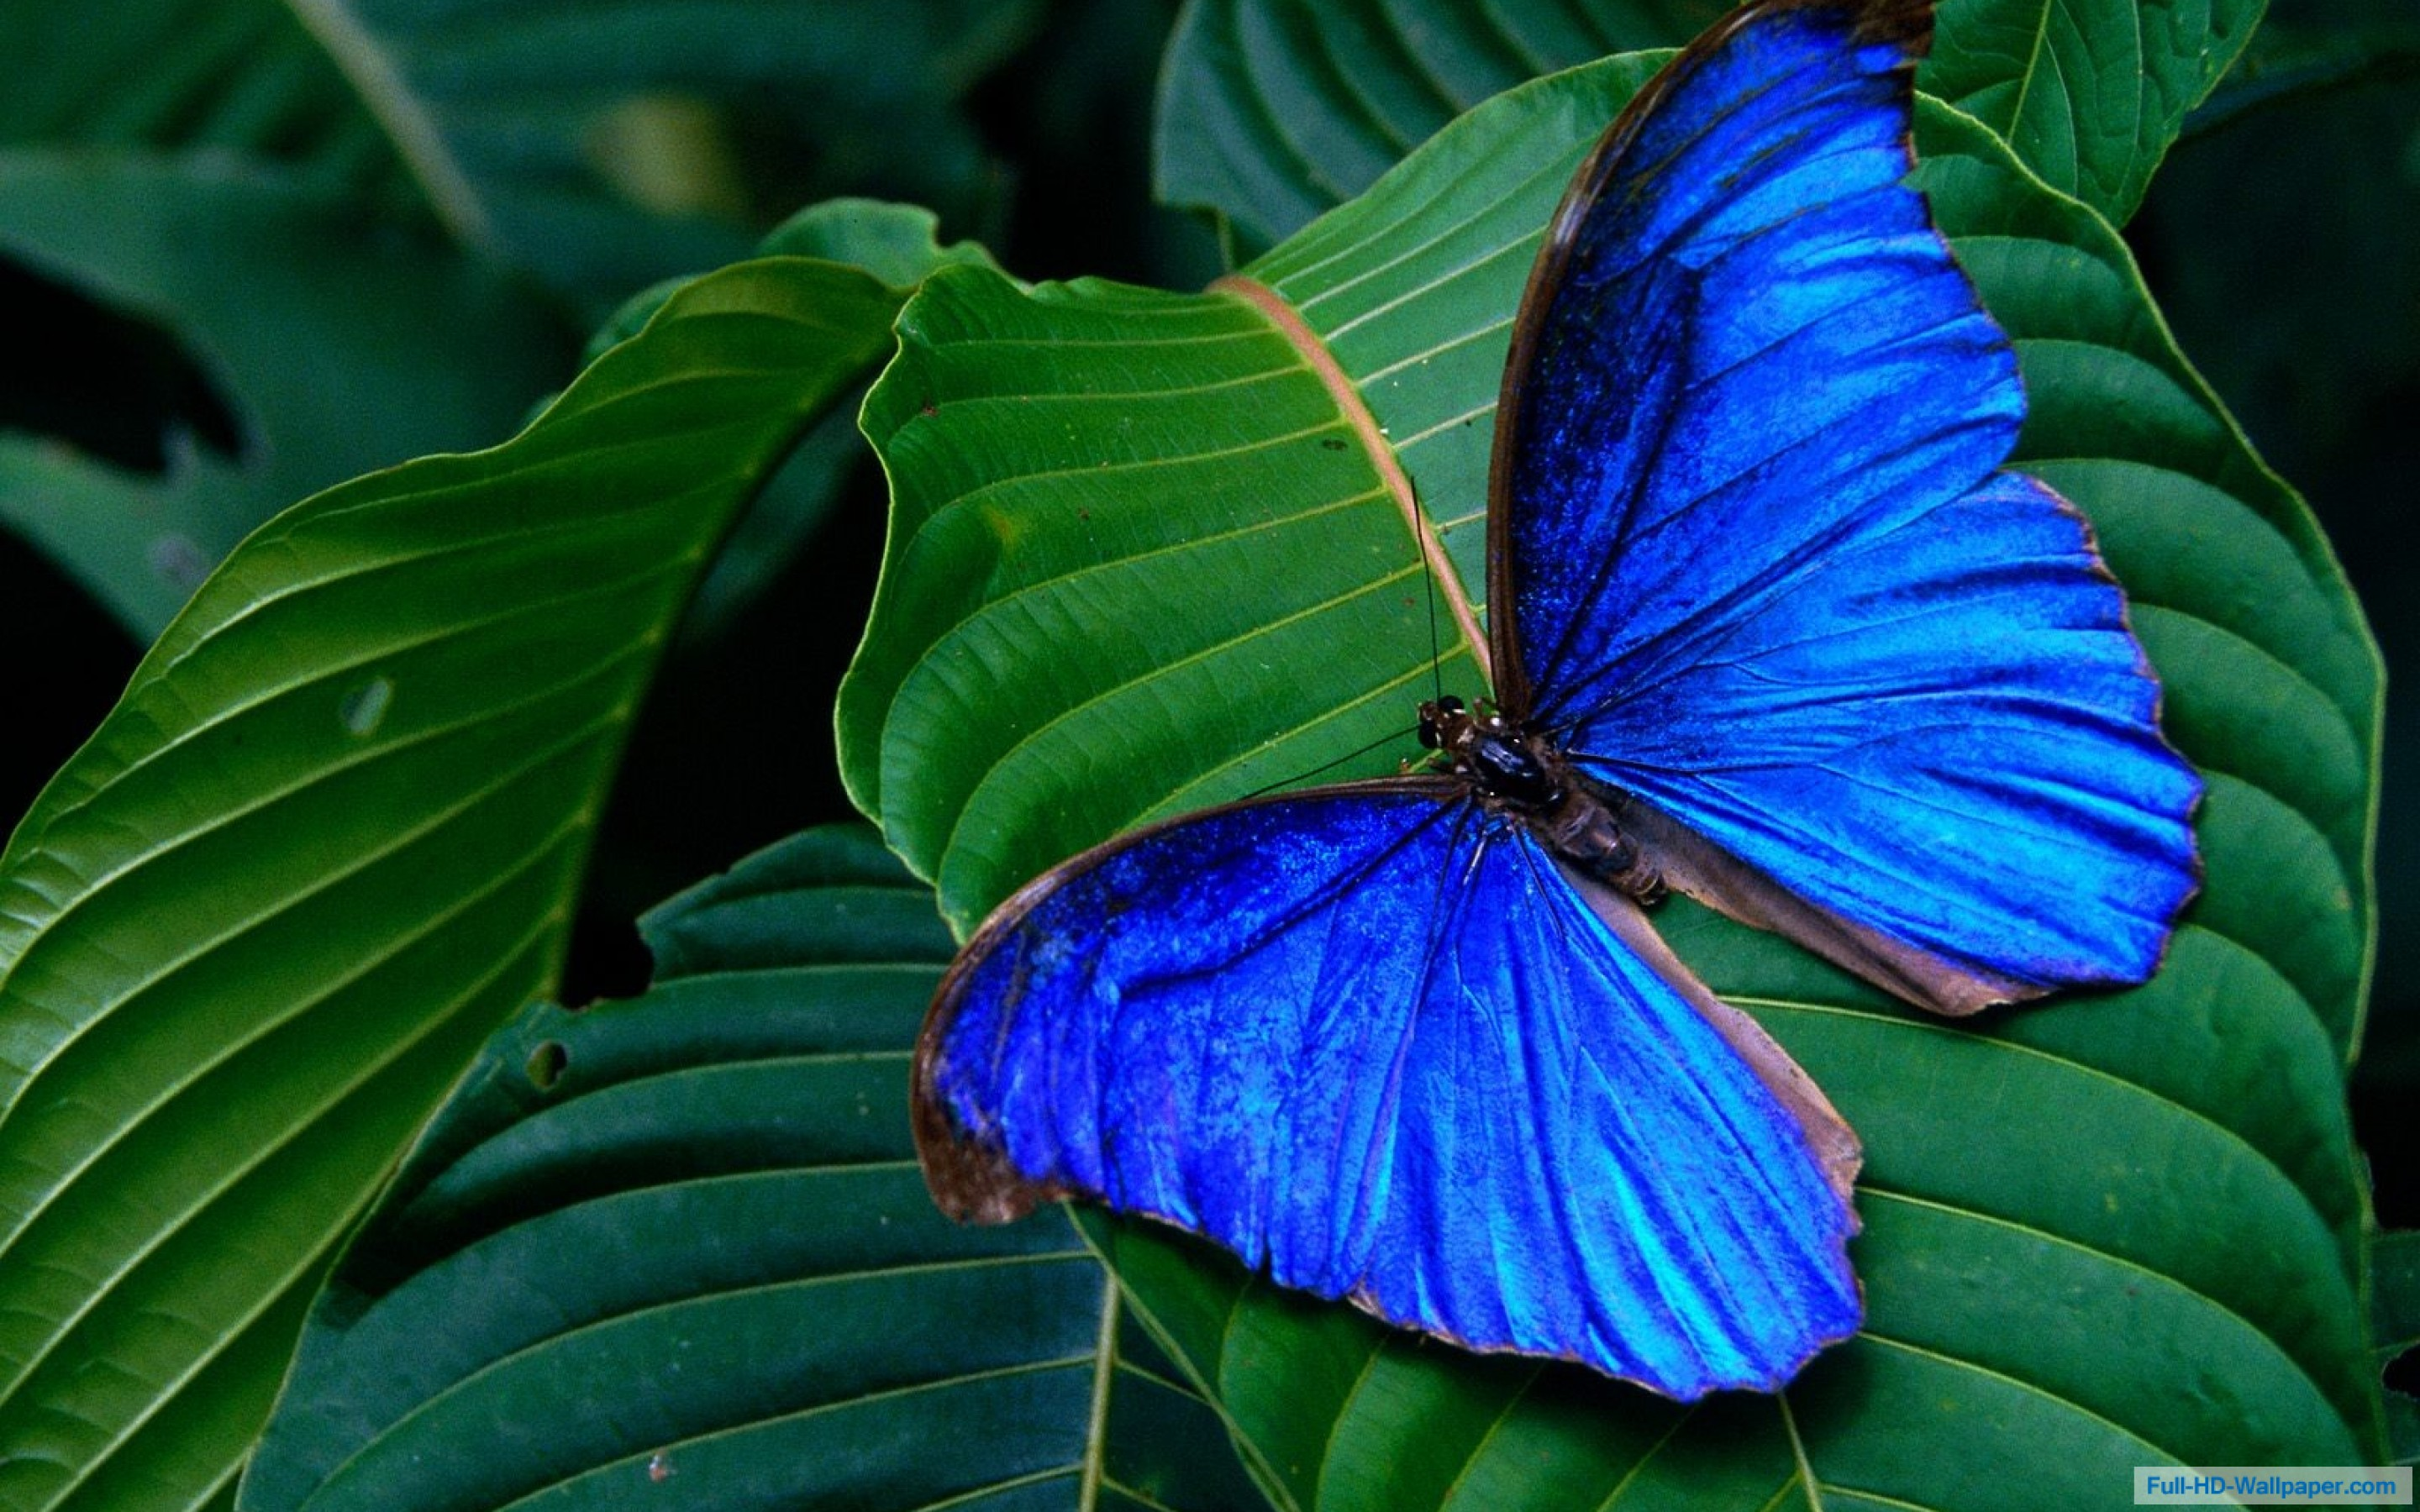 blue colorful butterfly nature hd wallpaper HD Wallpapers 2880x1800